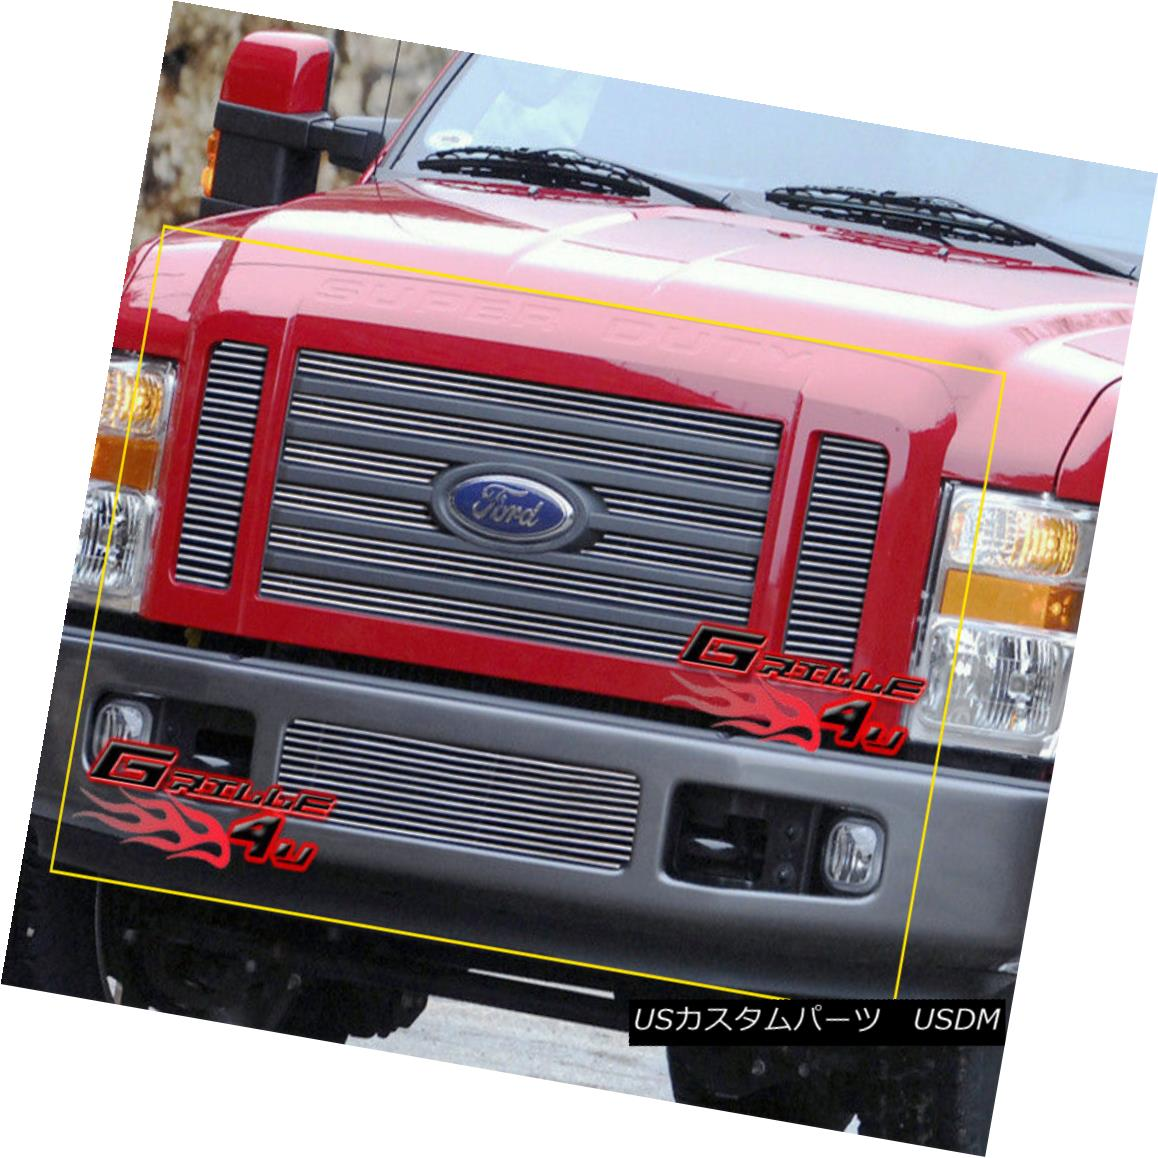 USグリル For 08-10 Ford F-250/F-350/F-450 SD FX4 Billet Grille Combo 08-10フォードF-250 / F-350 / F- 450 SD FX4ビレットグリルコンボ用